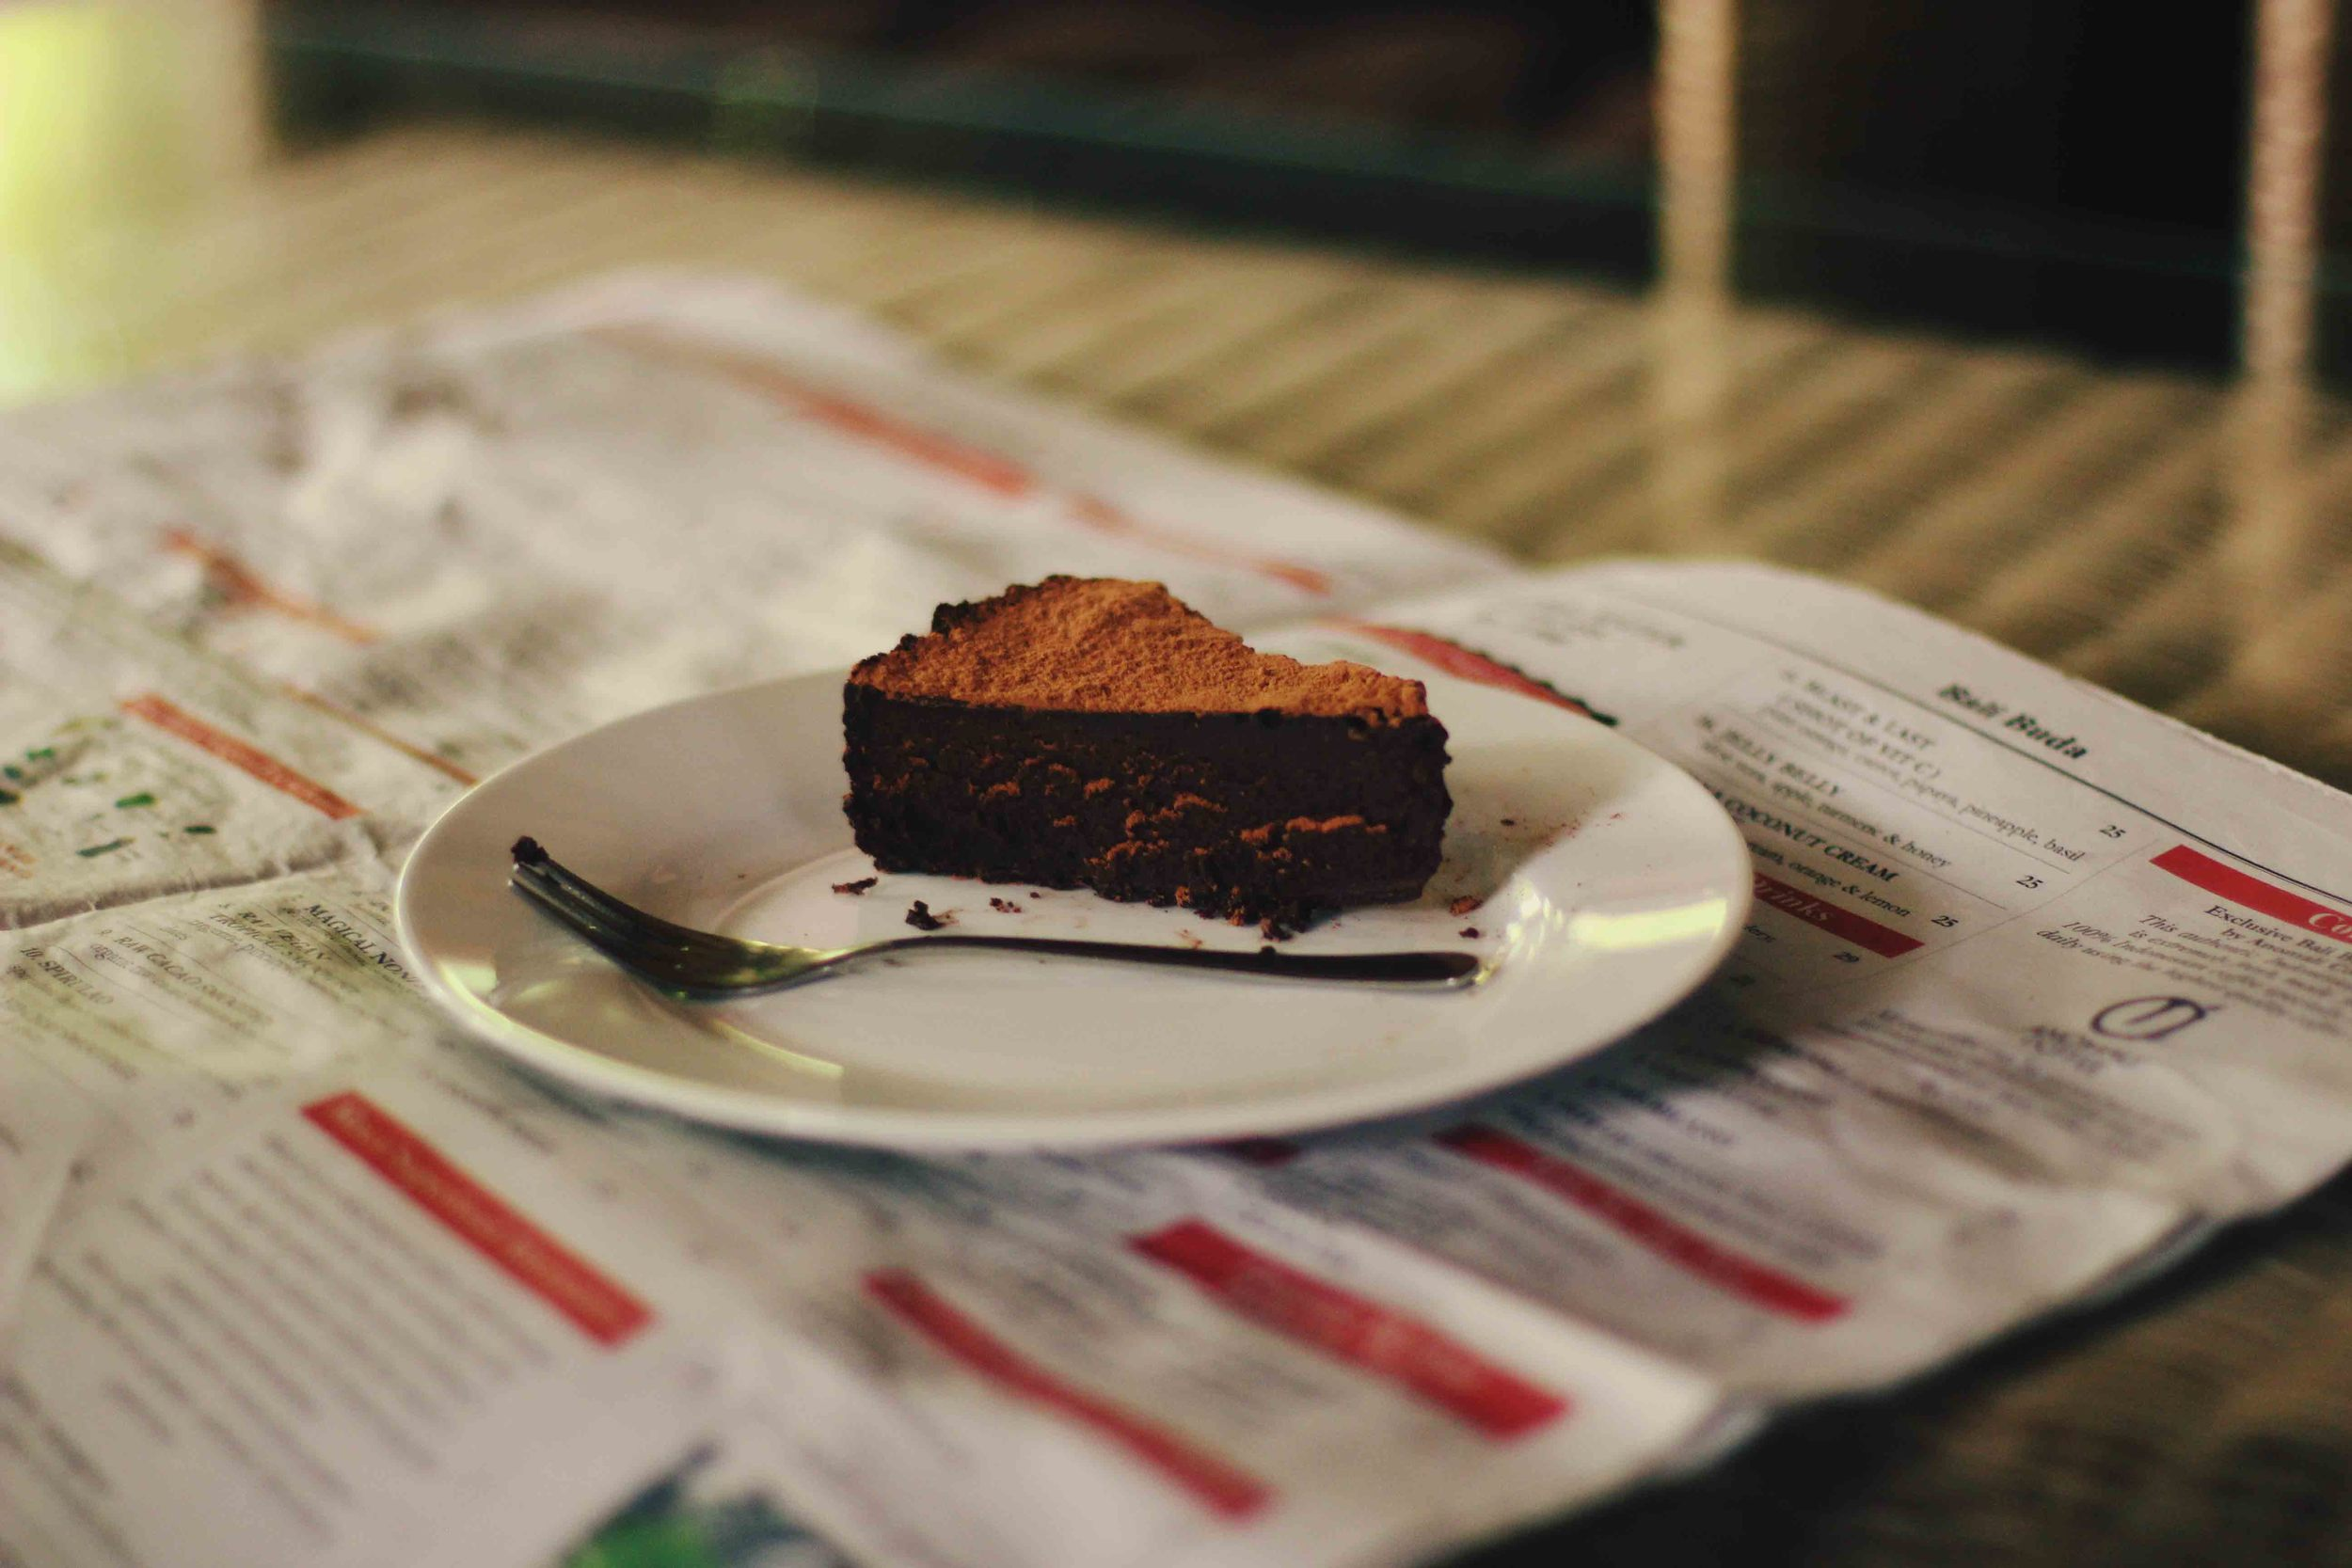 Chocolate Mousse Cake. Photo by Scarlett.